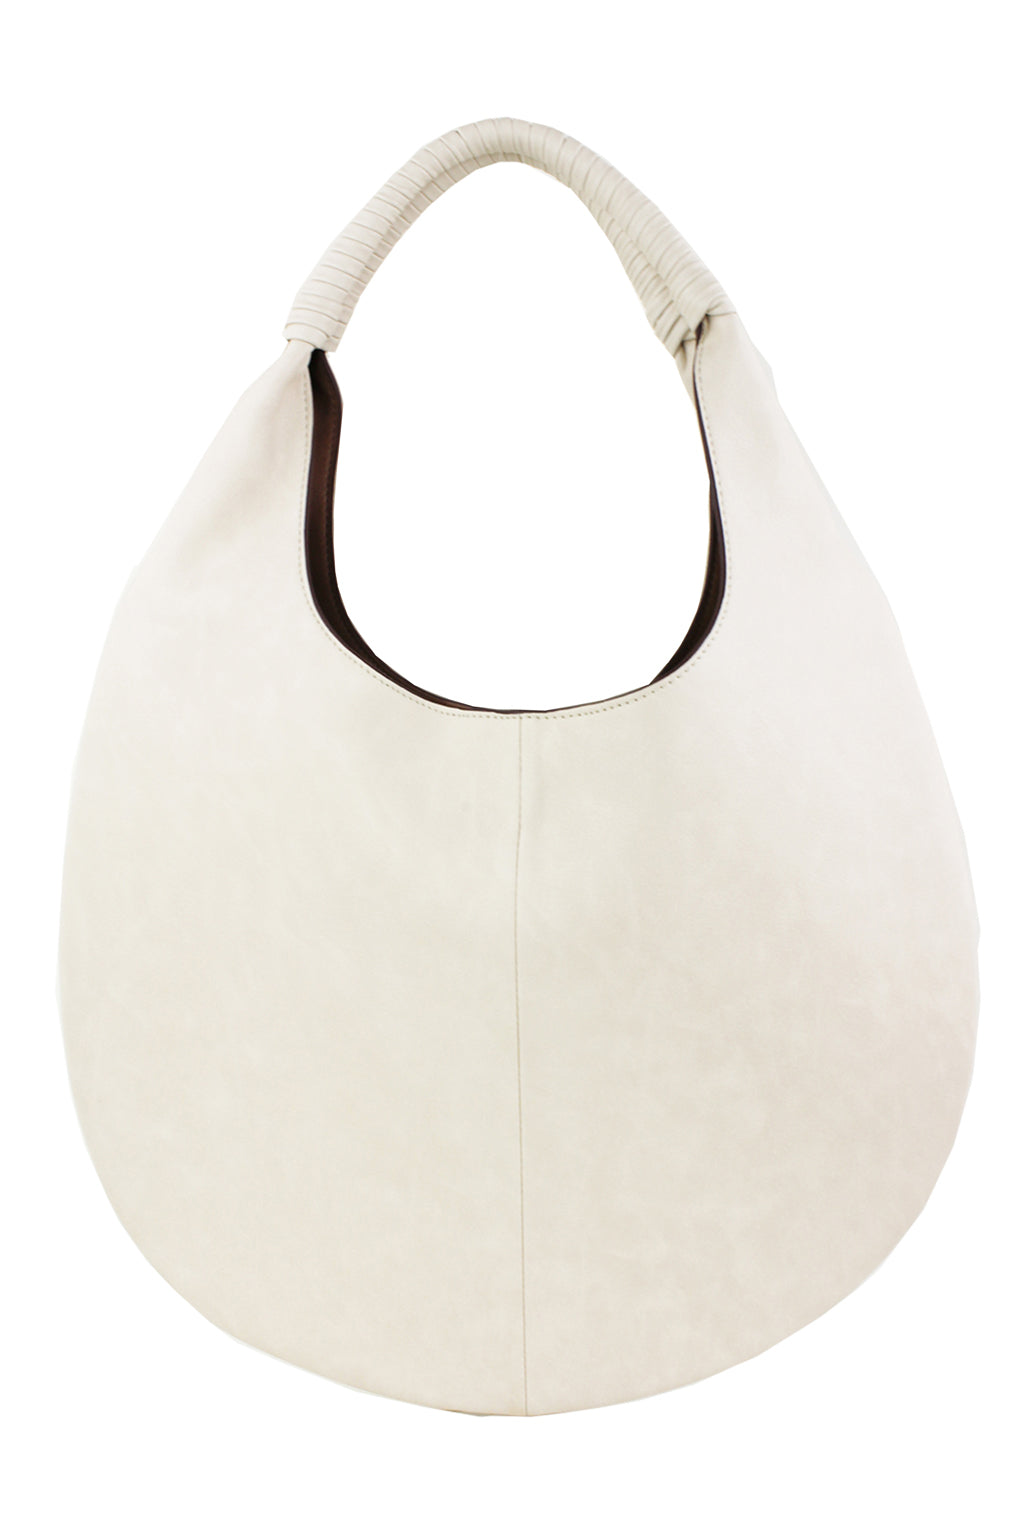 Reversible Round Hobo Bag - Ivory - Sweetly Striped